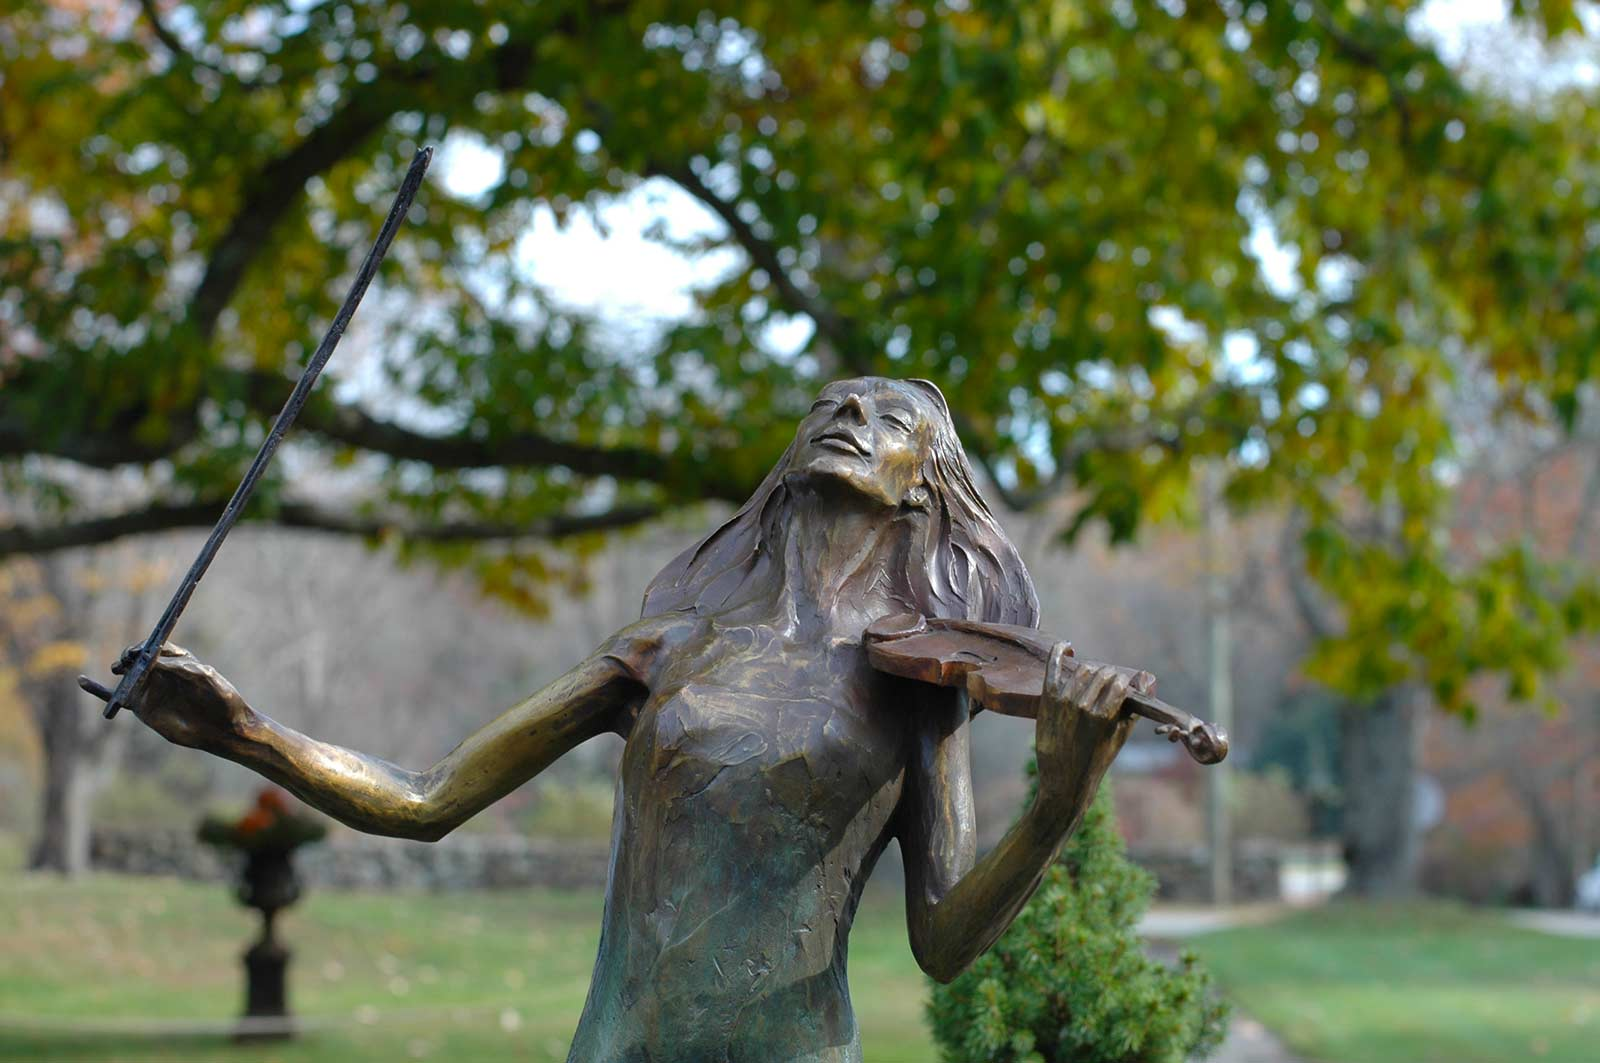 Rapture bronze violinist sculpture by Andrew DeVries